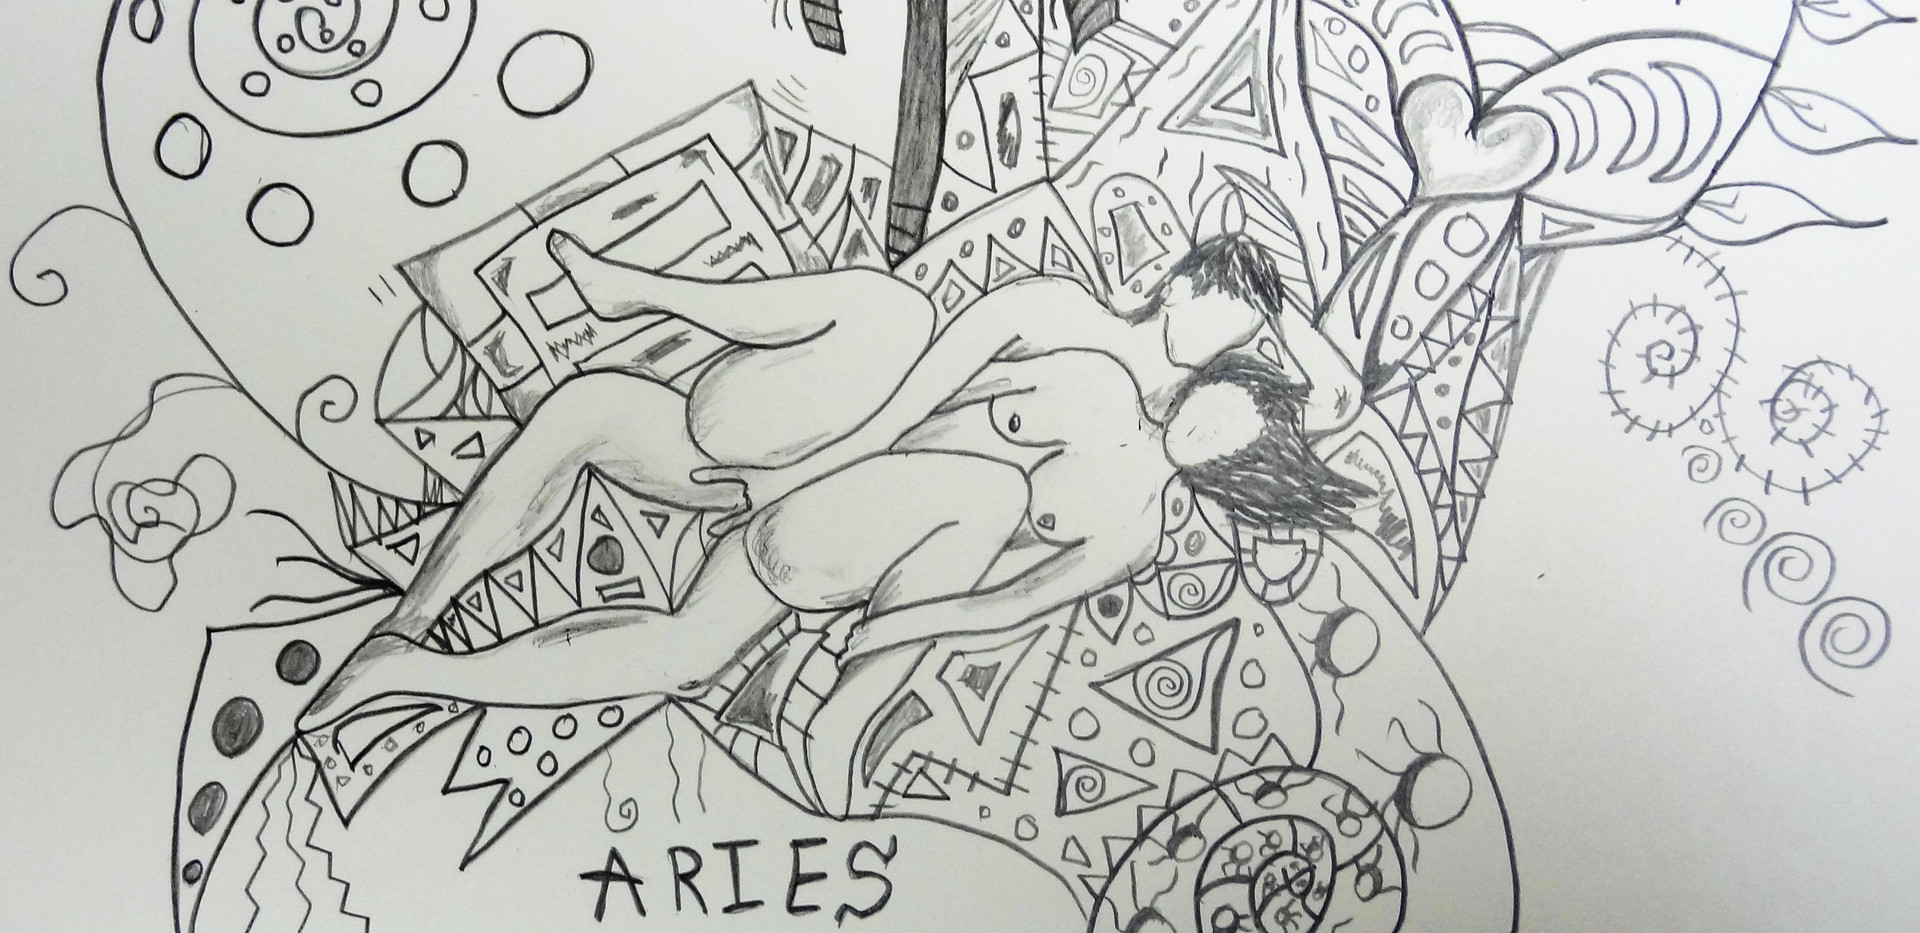 Aries. Pencil On Paper.